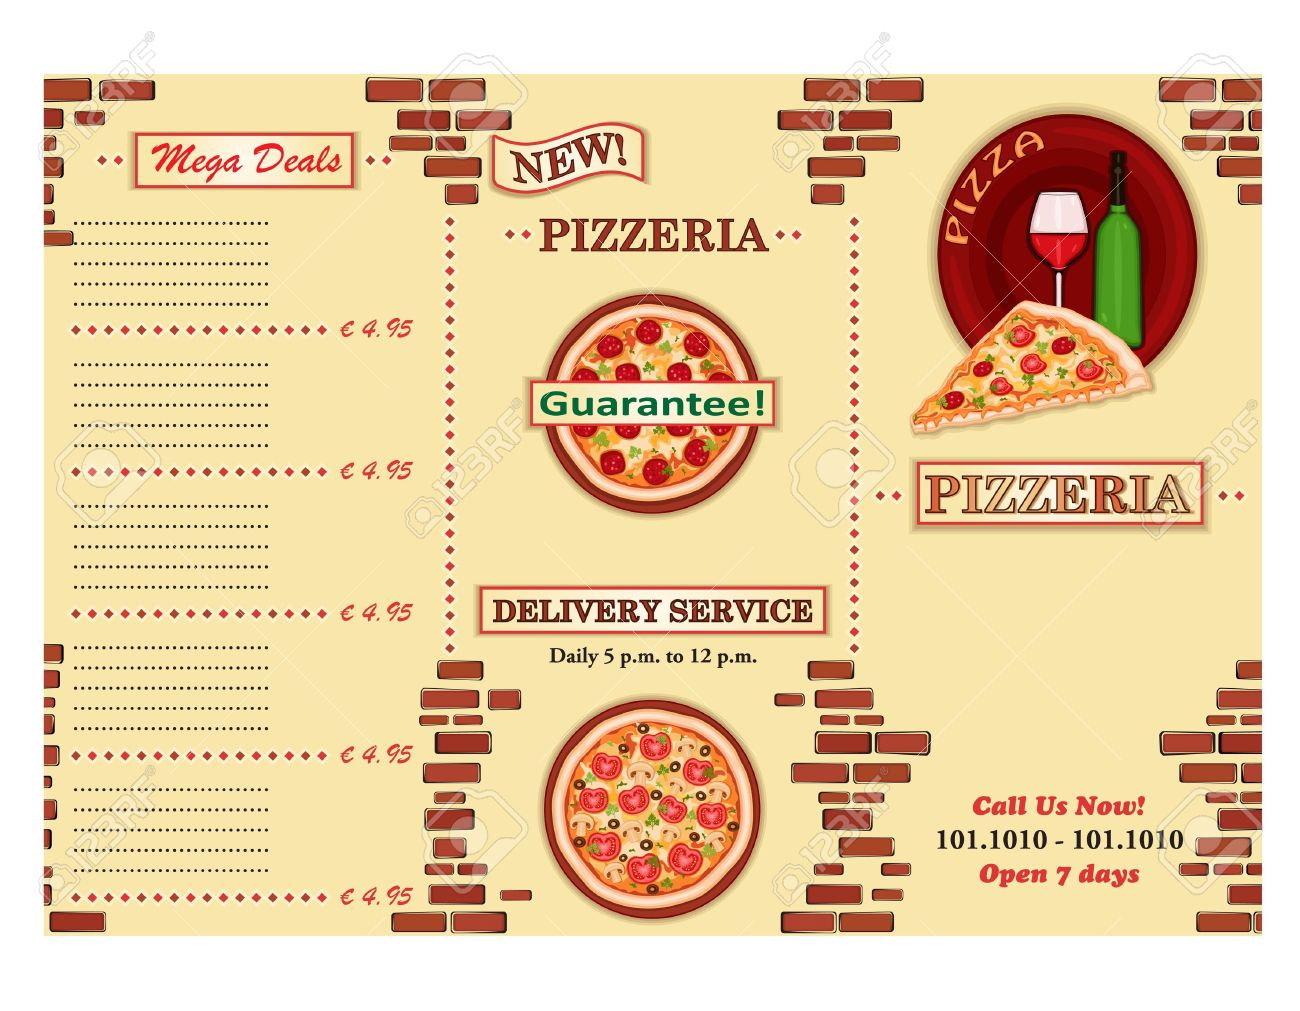 Pizzeria - take away Italian restaurant leaflet. Three fold, standard size A 4. Stock Vector - 10257253